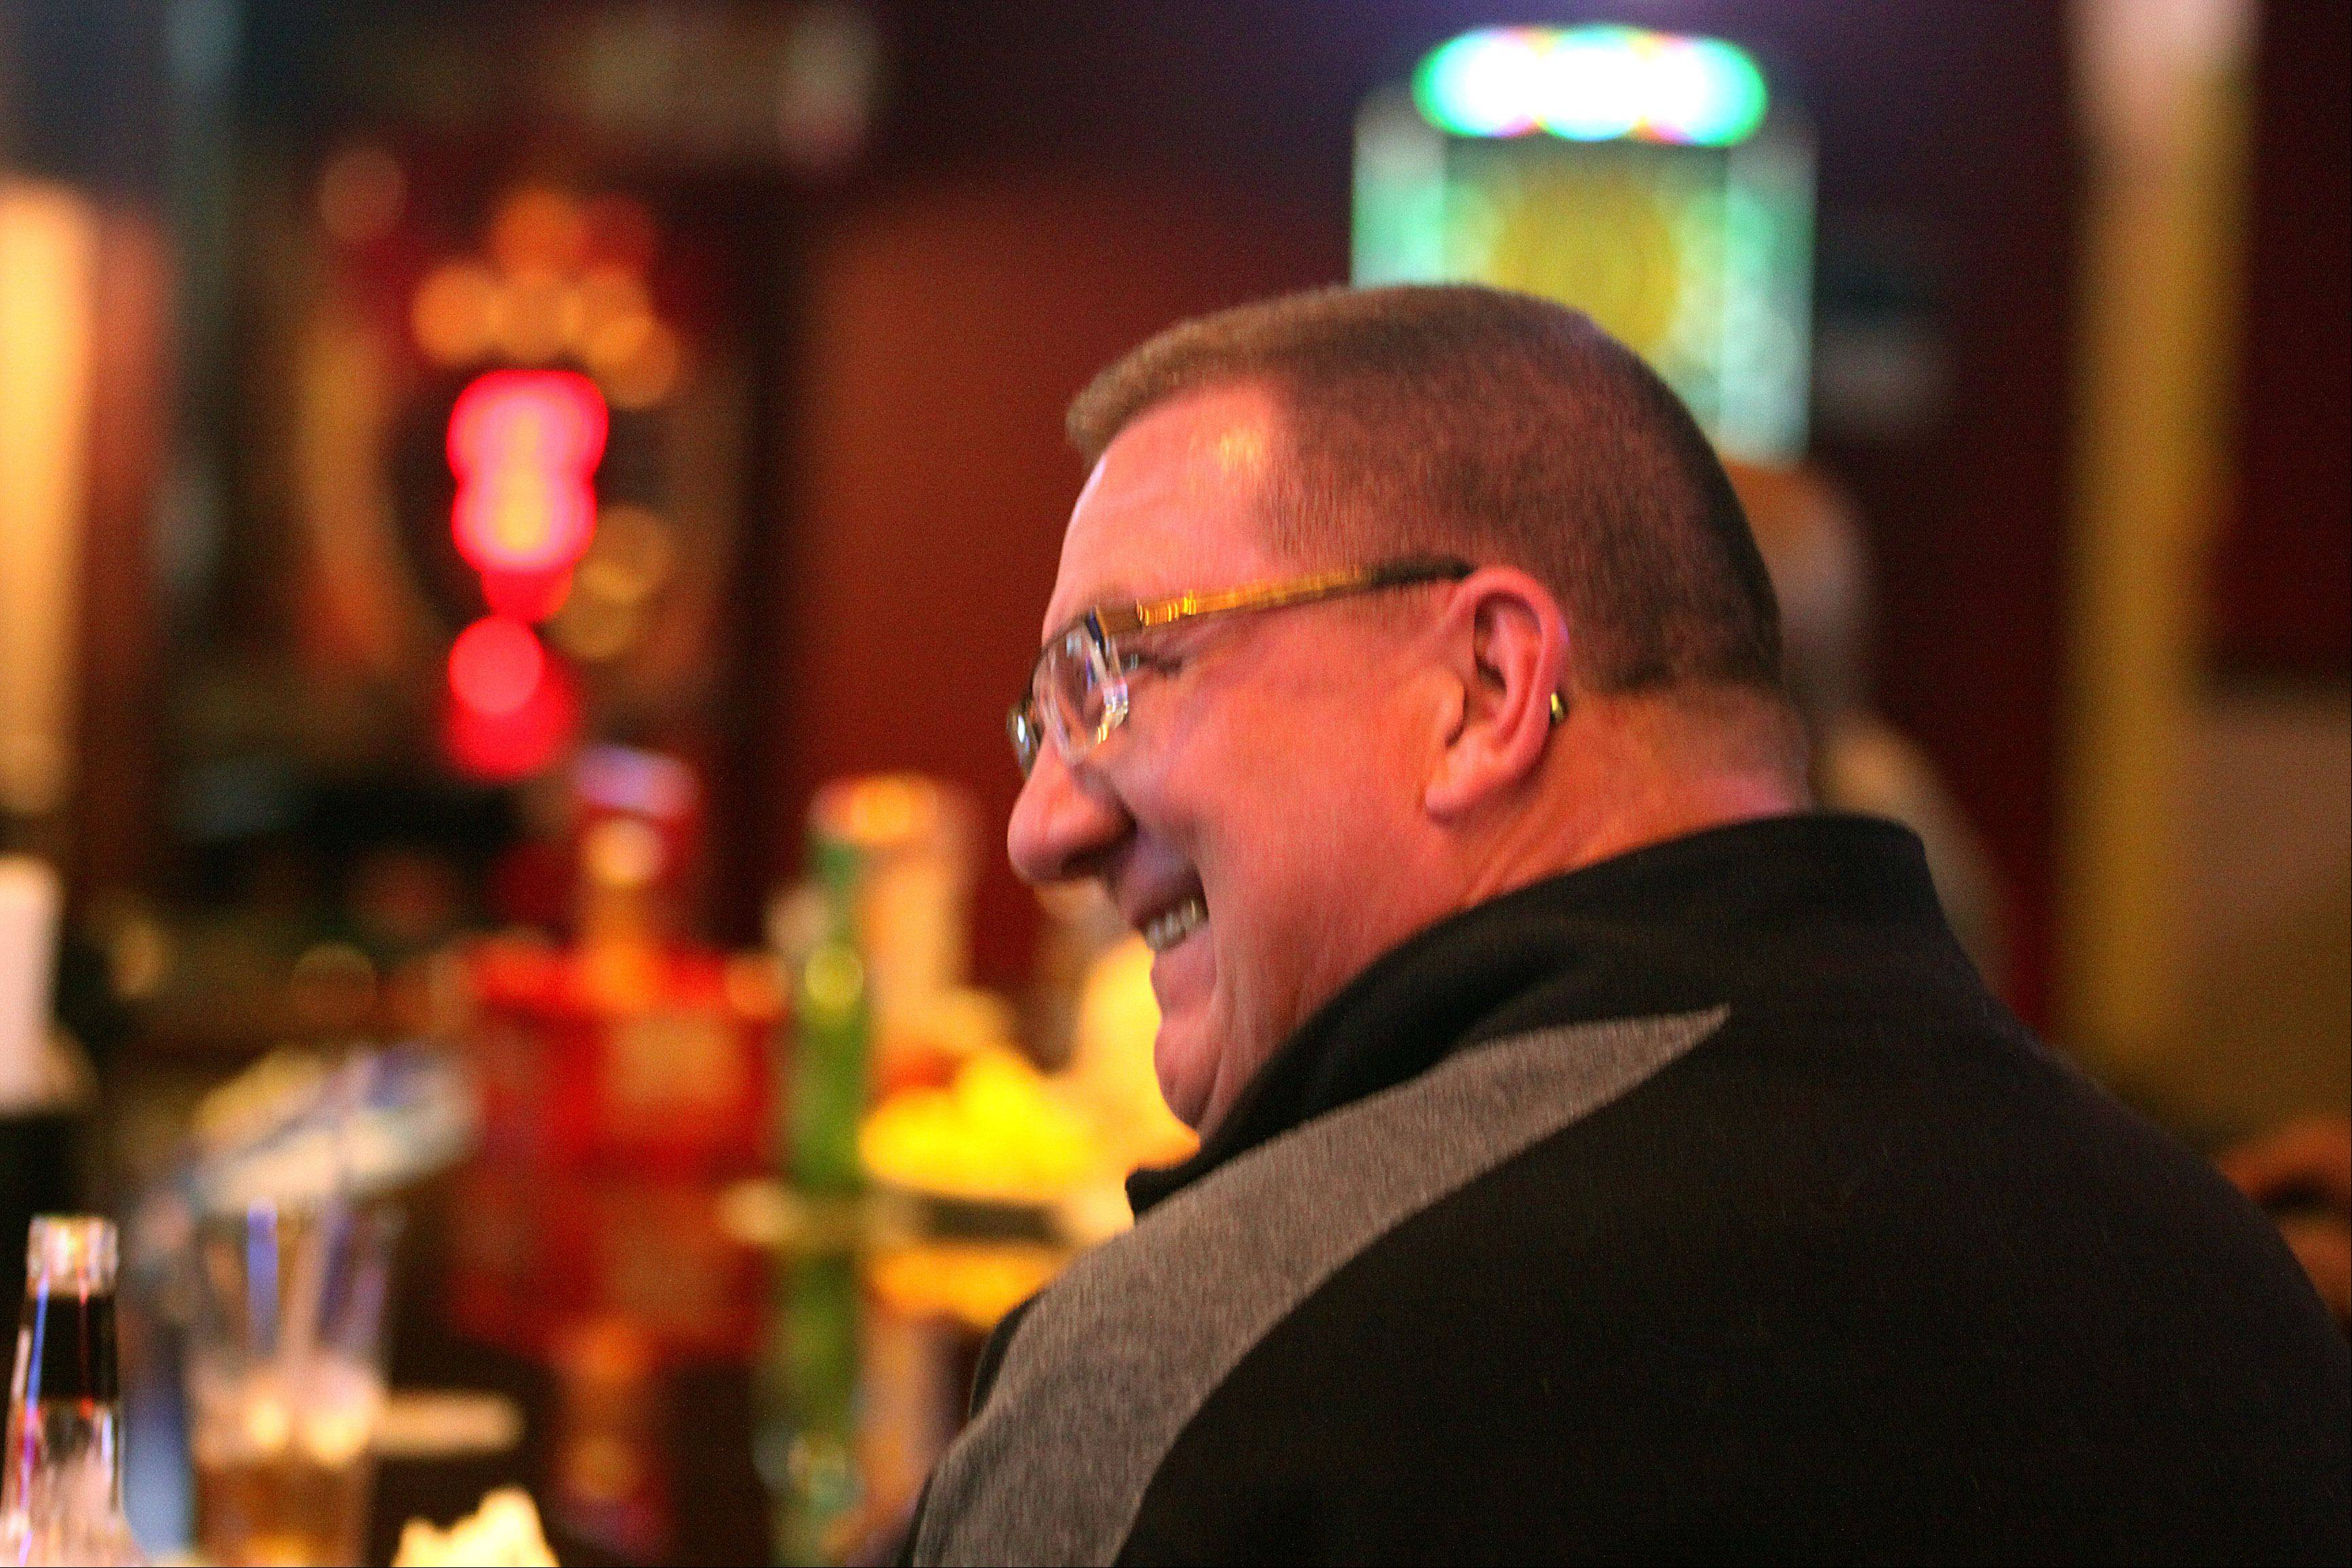 Gary Monson of Algonquin shares a laugh with others at the Pour House Bar & Grill in East Dundee.